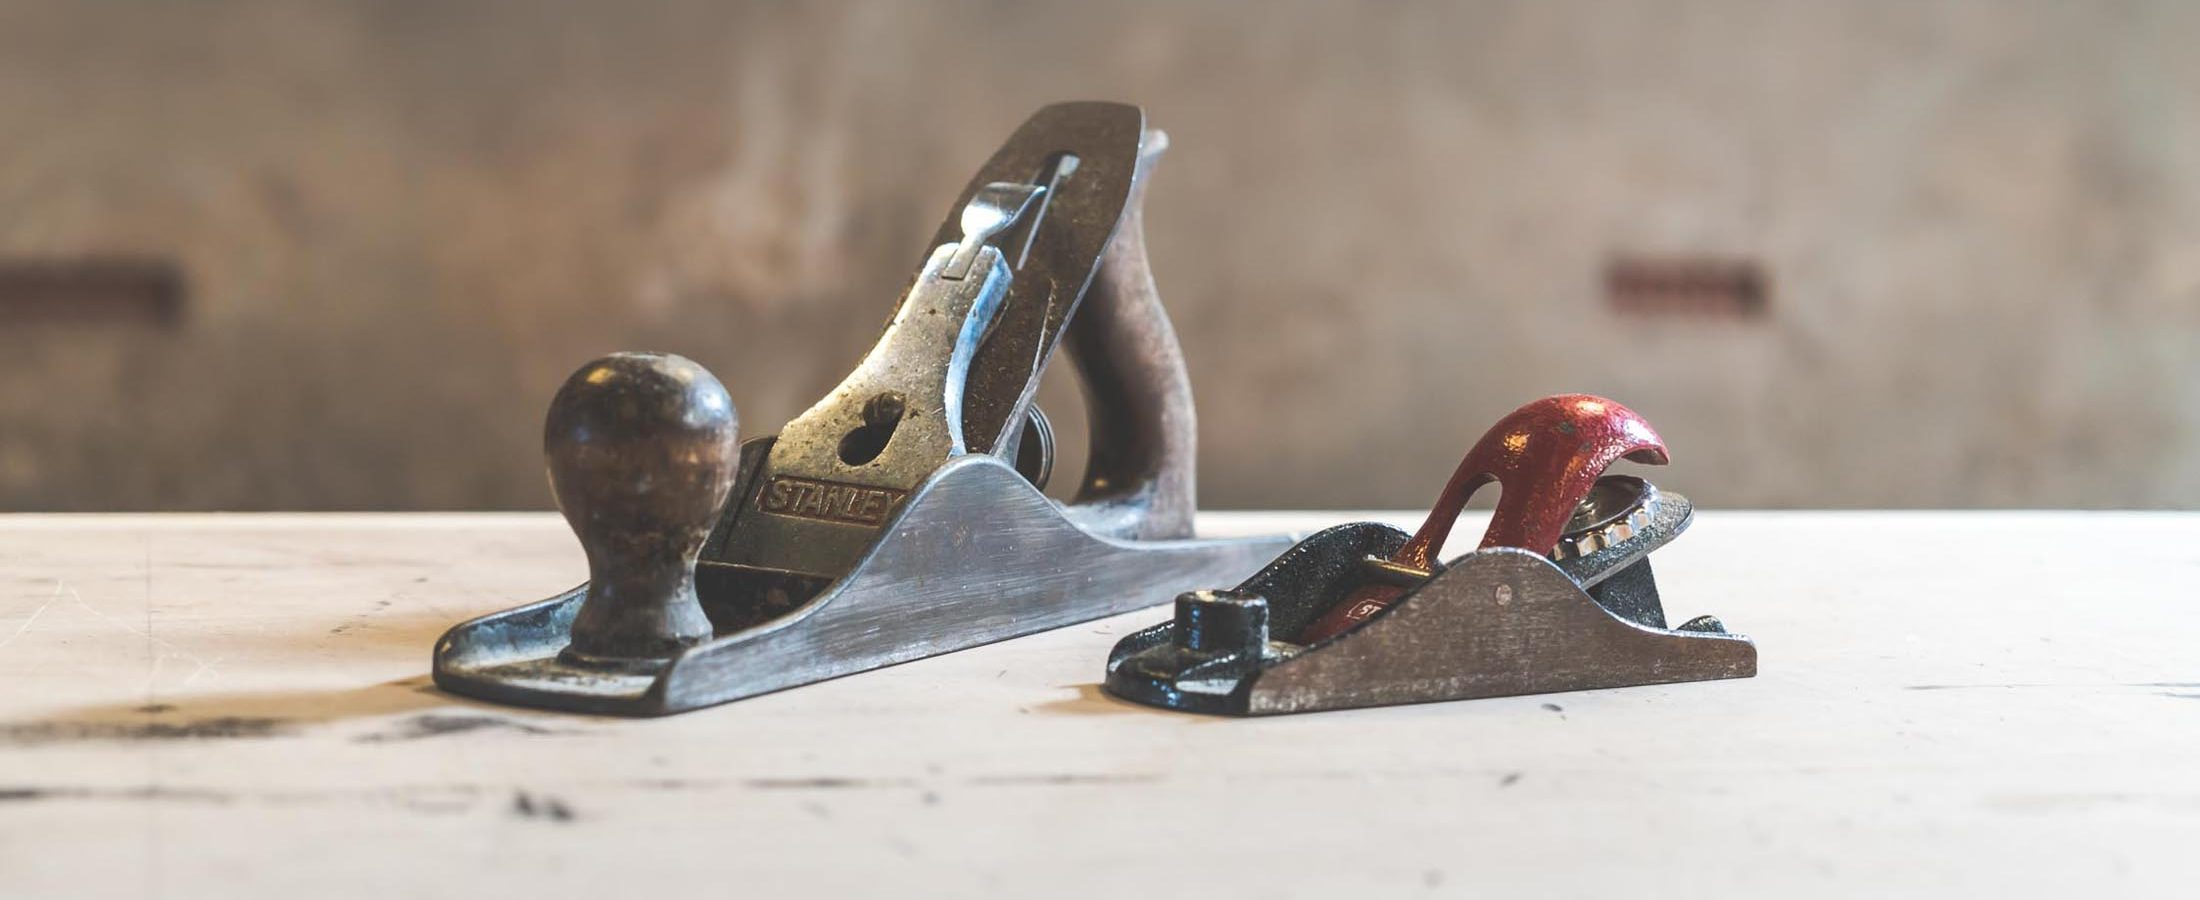 A Stanley Block Plane and Bench Plane.